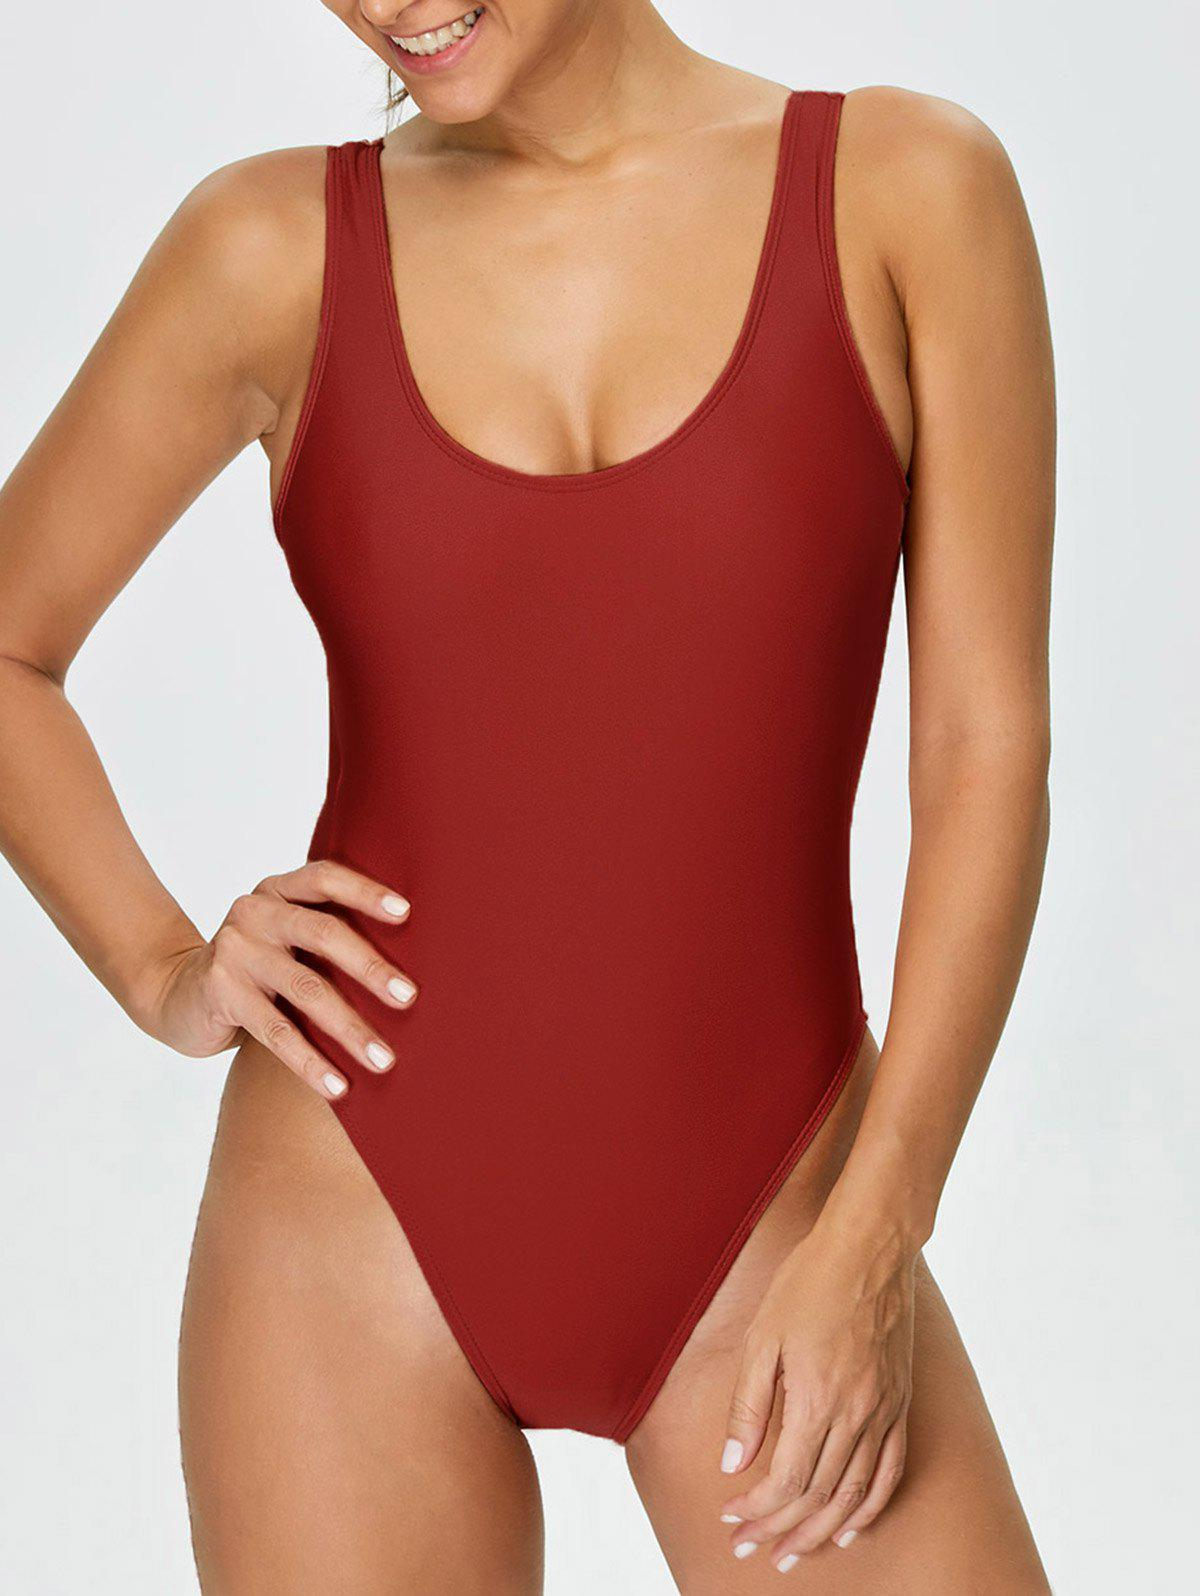 Store Backless High Cut One-piece Swimwear